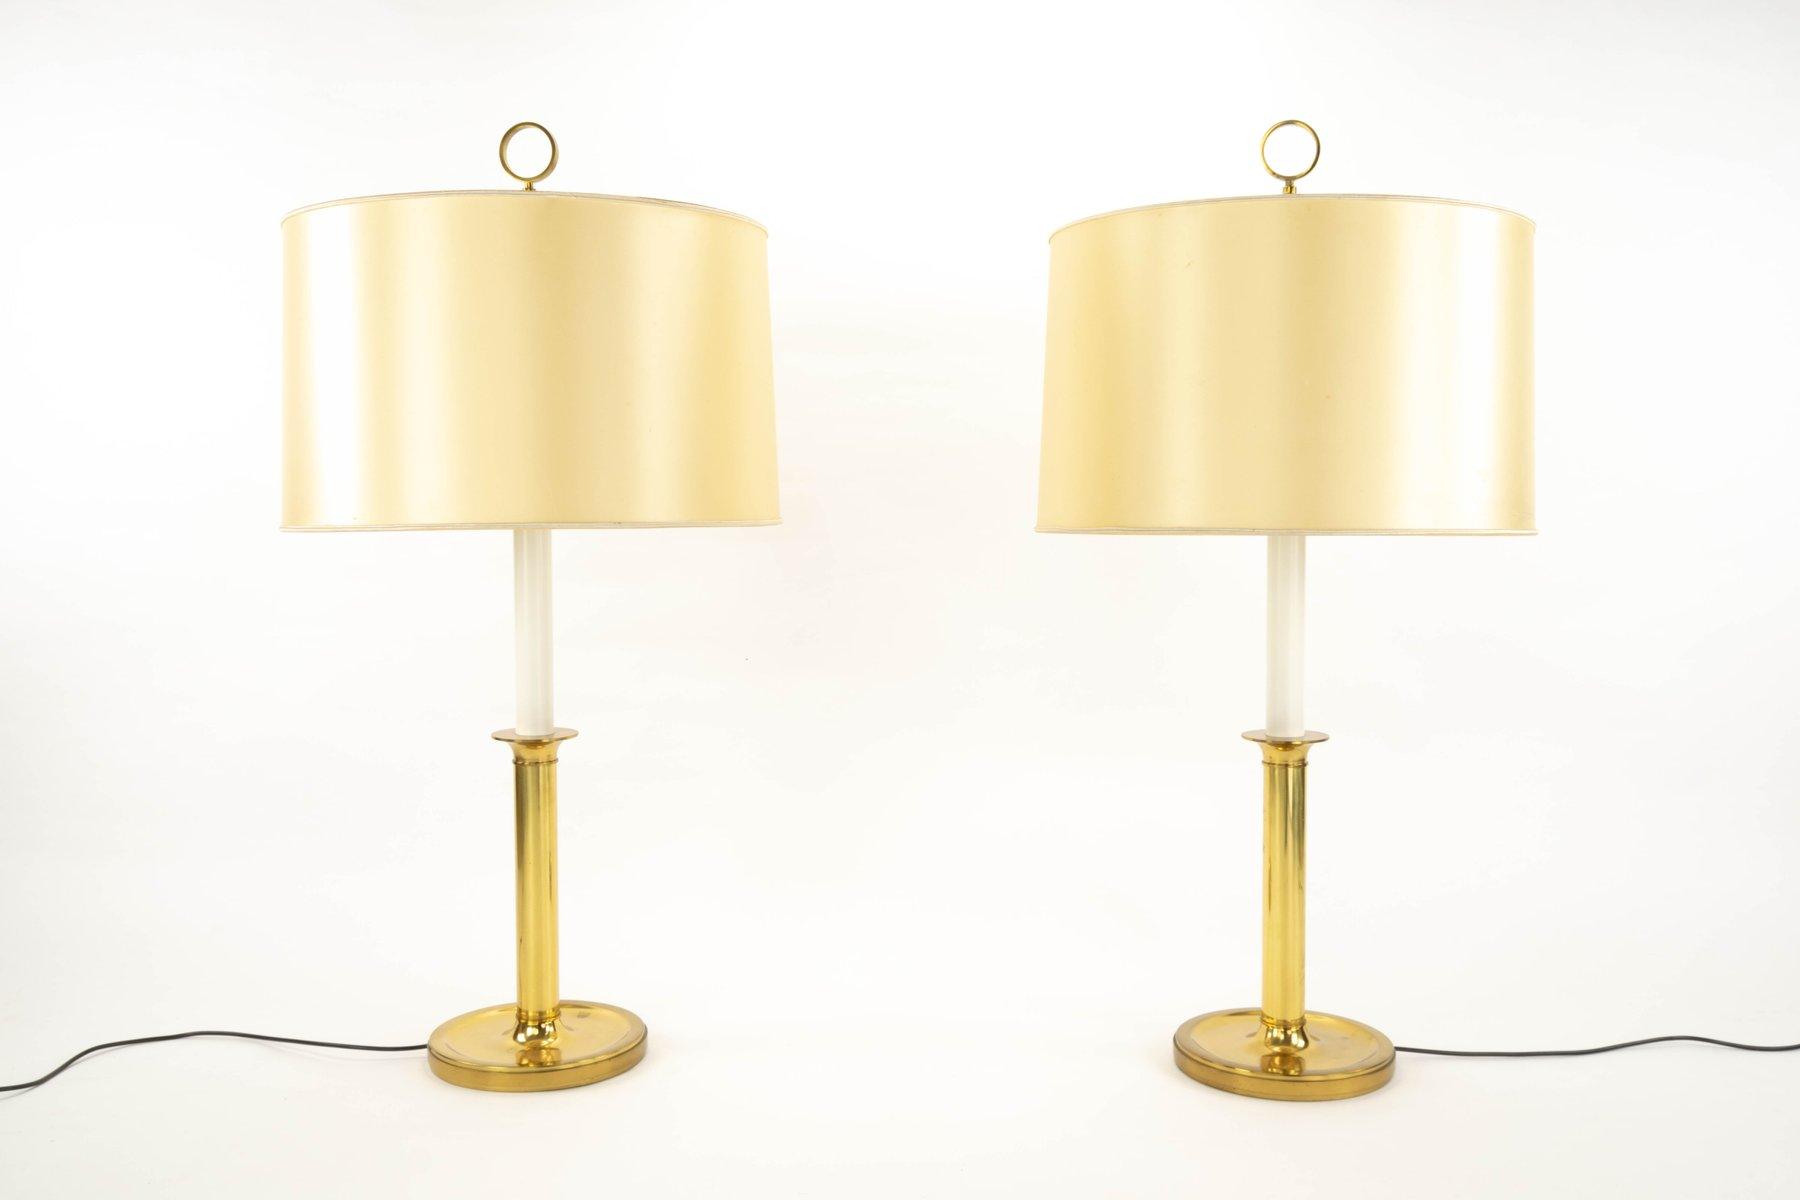 Vintage Gilded Brass Lamps by G.W. Hansen for Metalarte, Set of 2